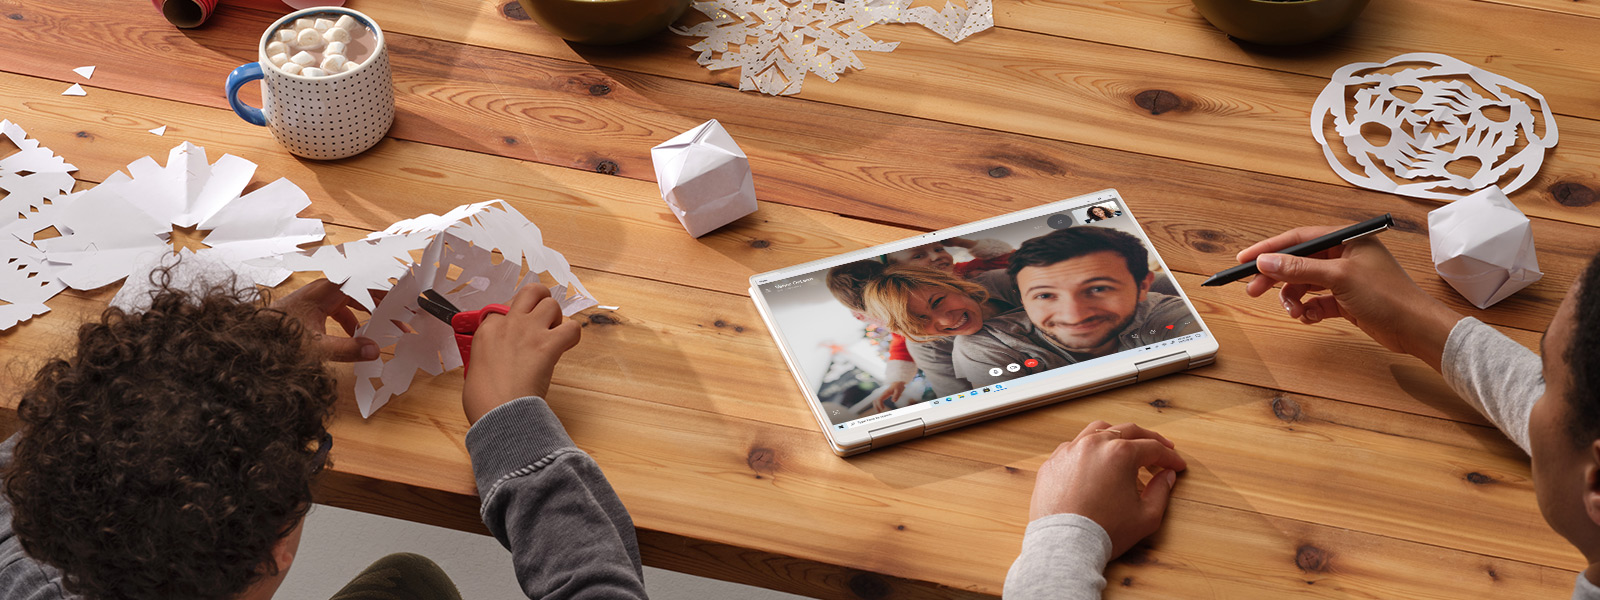 A PC sits flat on a table showing a skype call while two people sit at the table making snowflakes